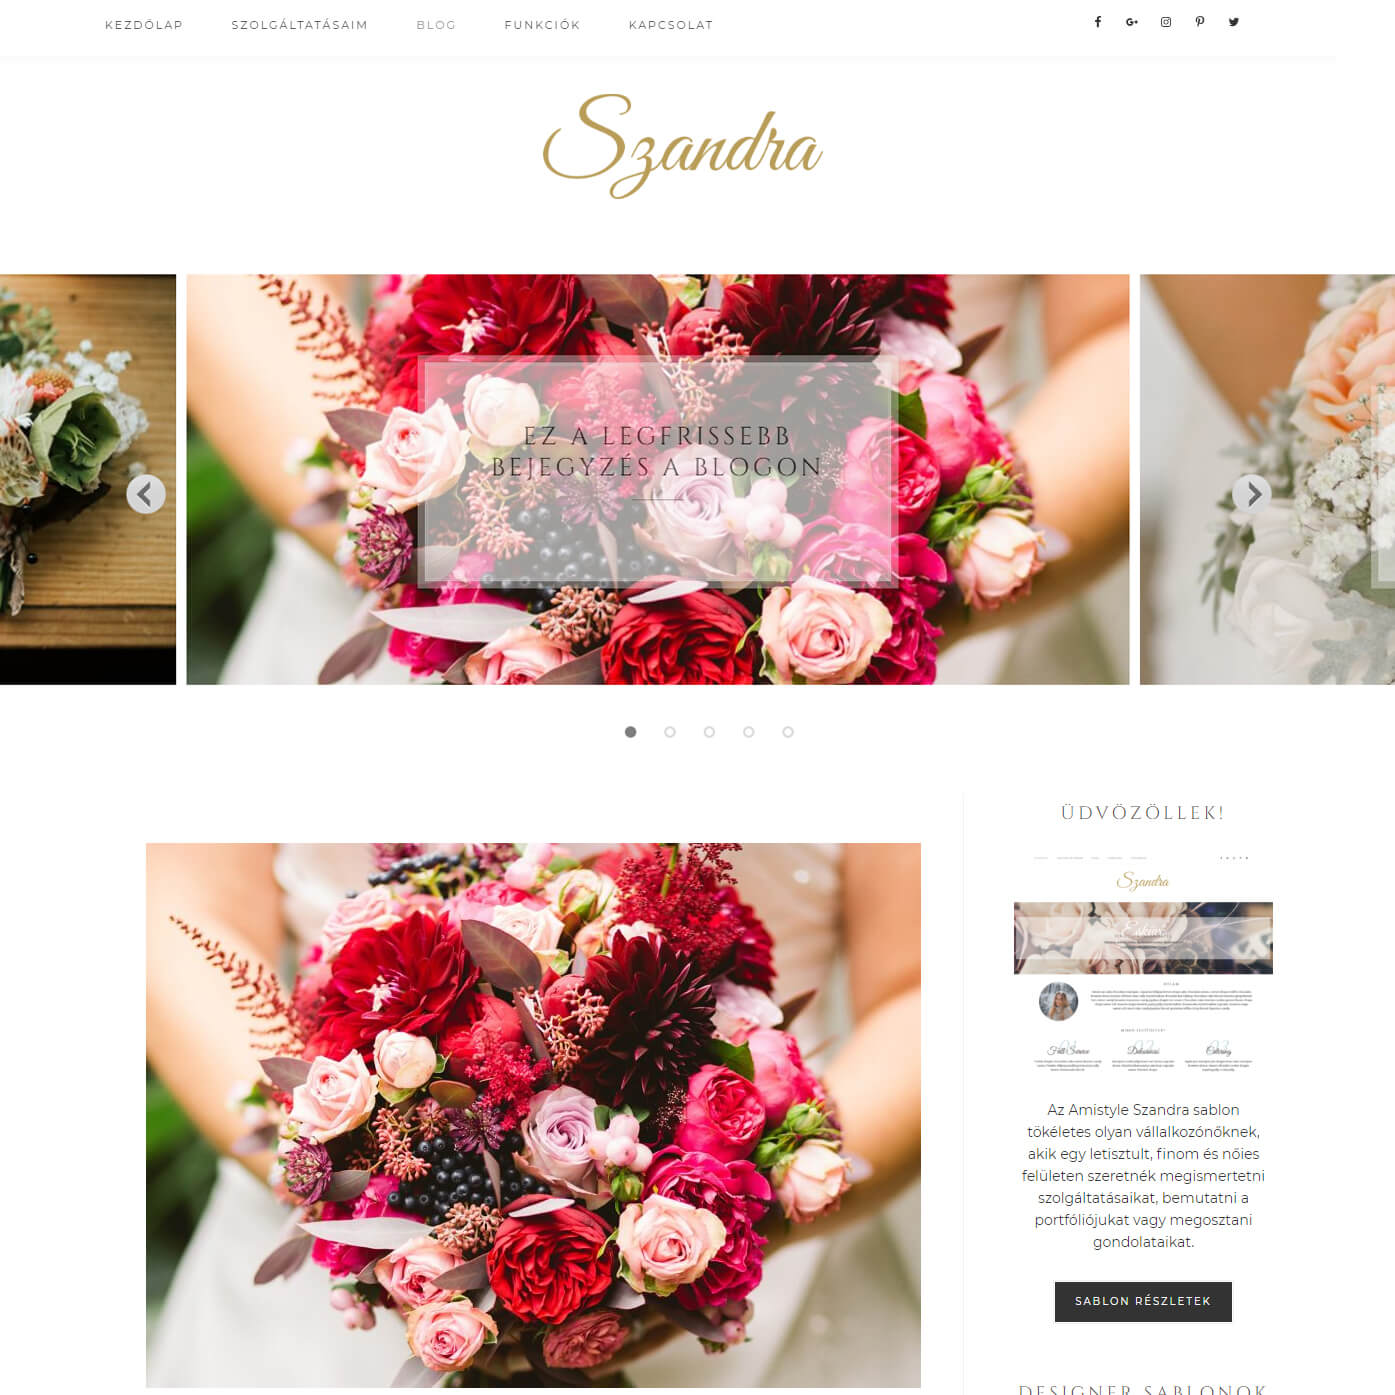 Szandra Wordpress Sablon Amistyle Webdesign